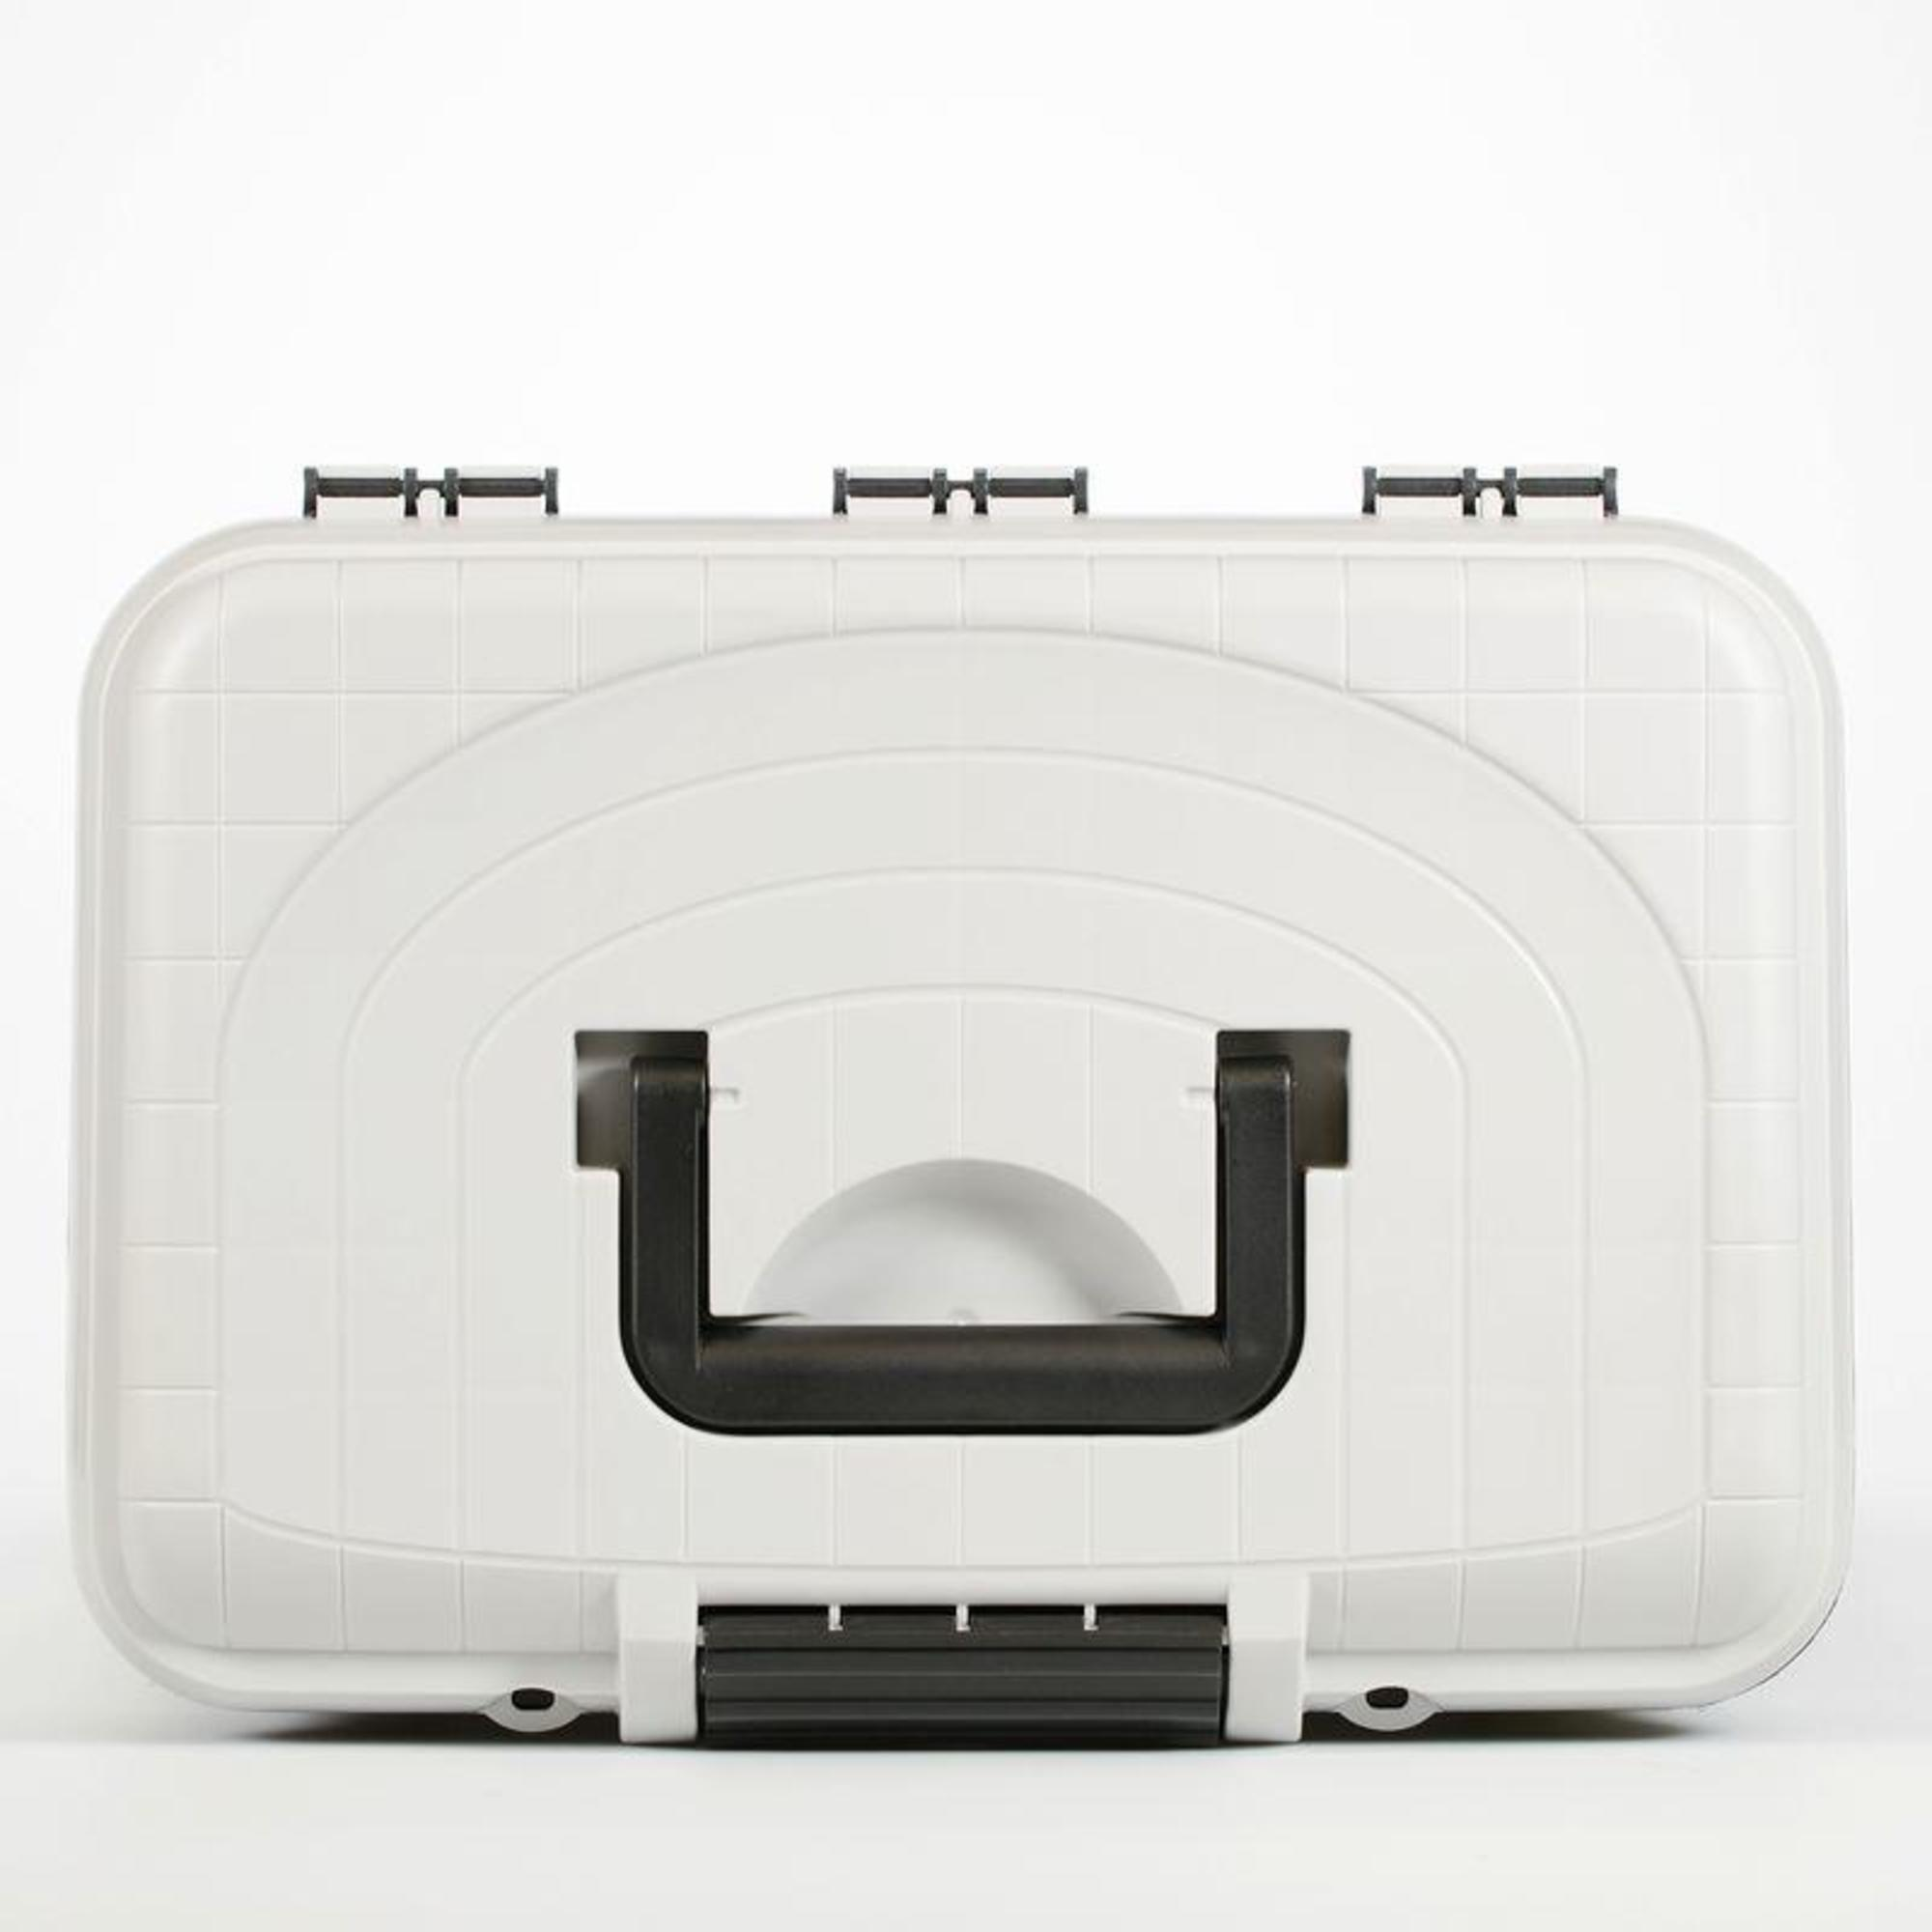 4-Drawer Fishing Box Suitable For Both Shore And Boat Fishing 36.5 x 23.5 x 5 cm